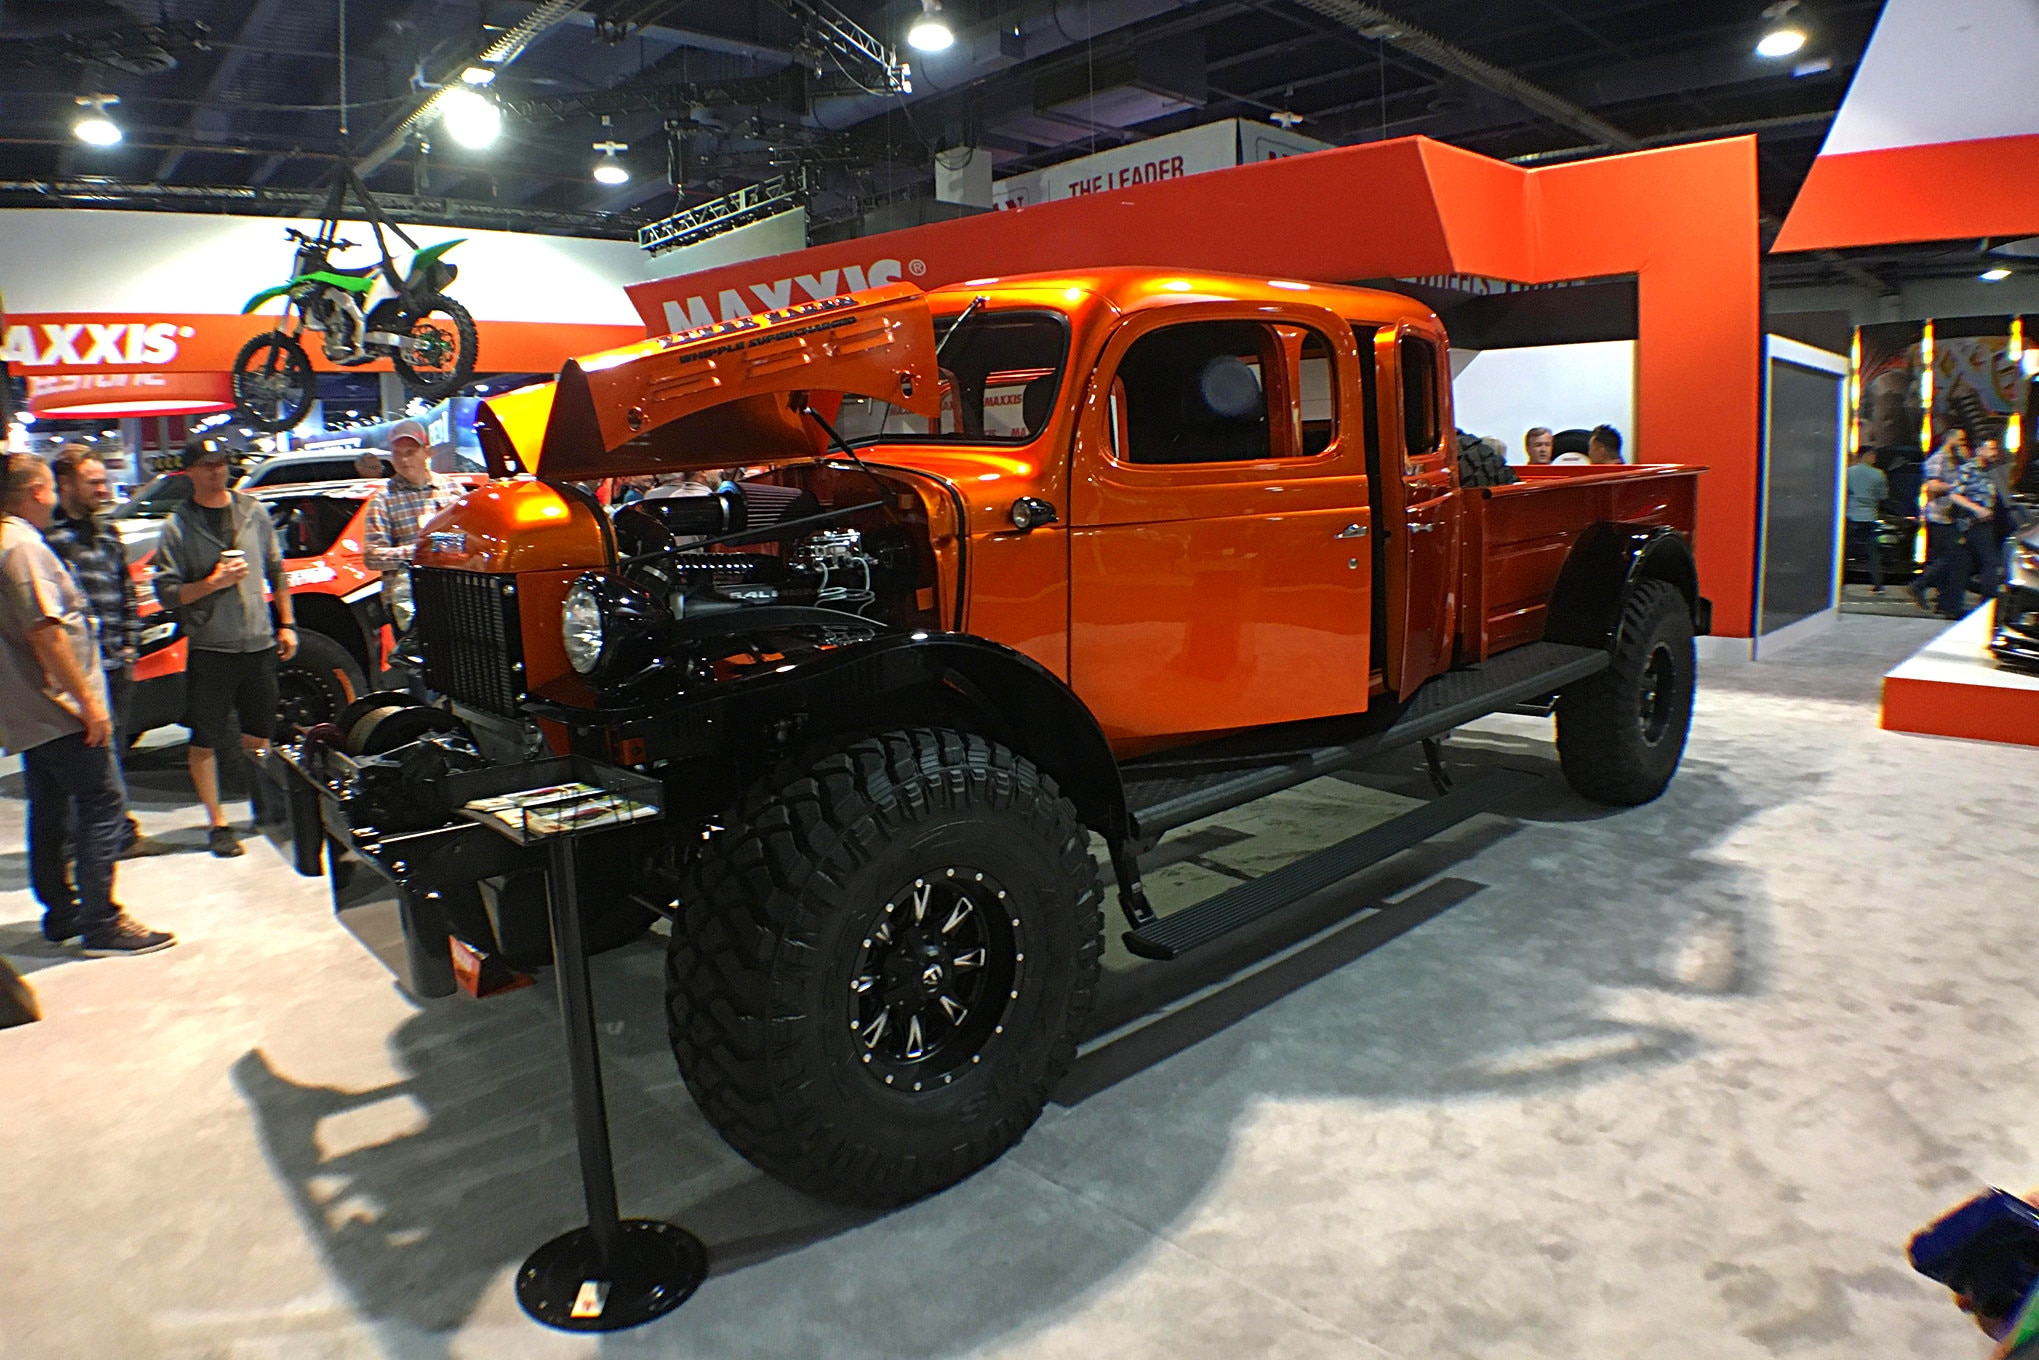 This killer Dodge was the star of the Maxxis Tire booth.